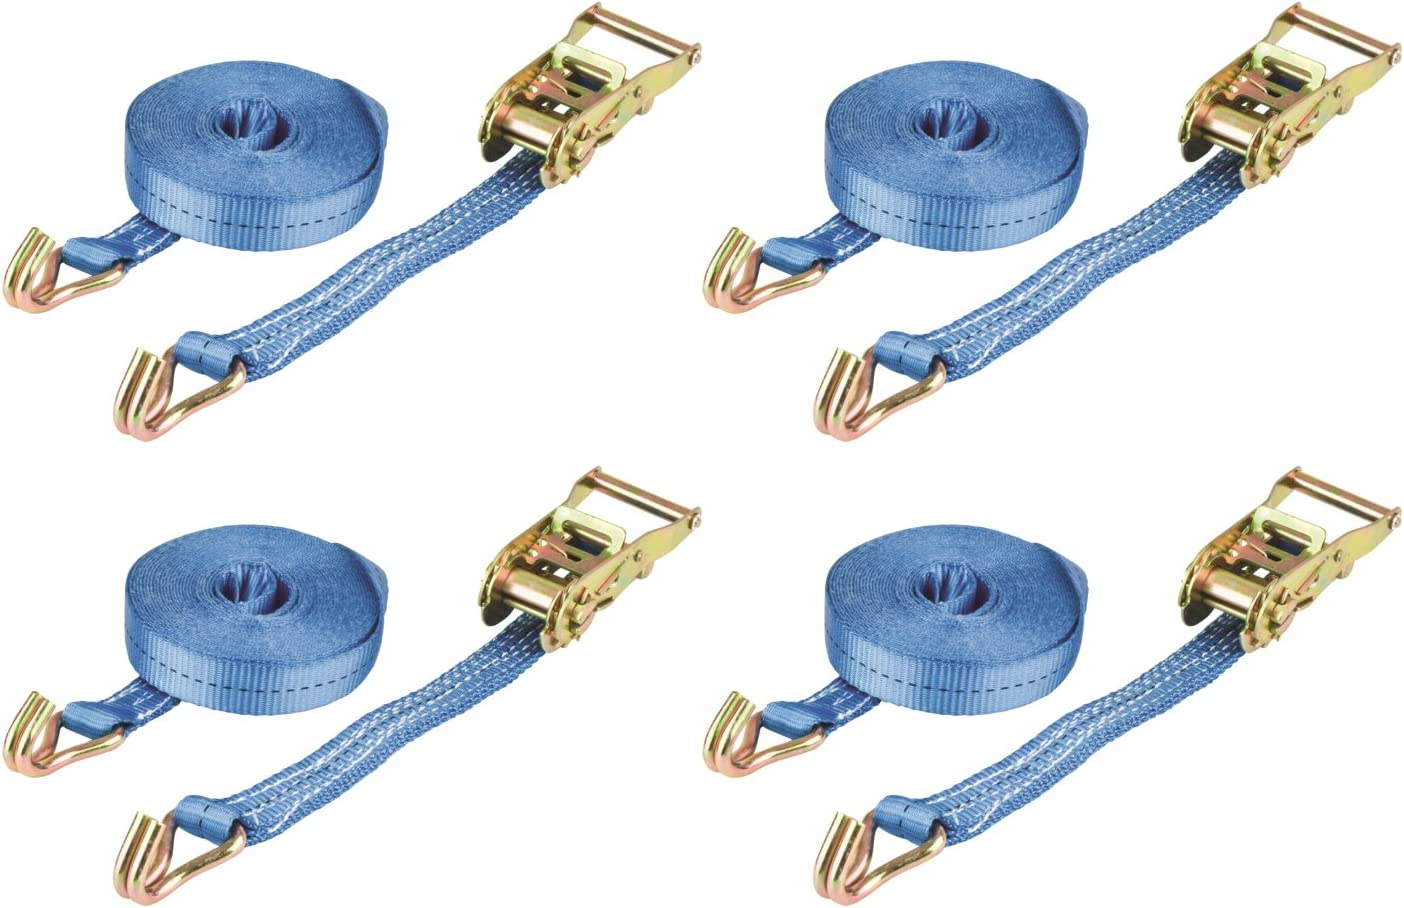 x10 25MM 5 Metre 1.5 Ton Blue Ratchet Lashing Straps with Claw Hook